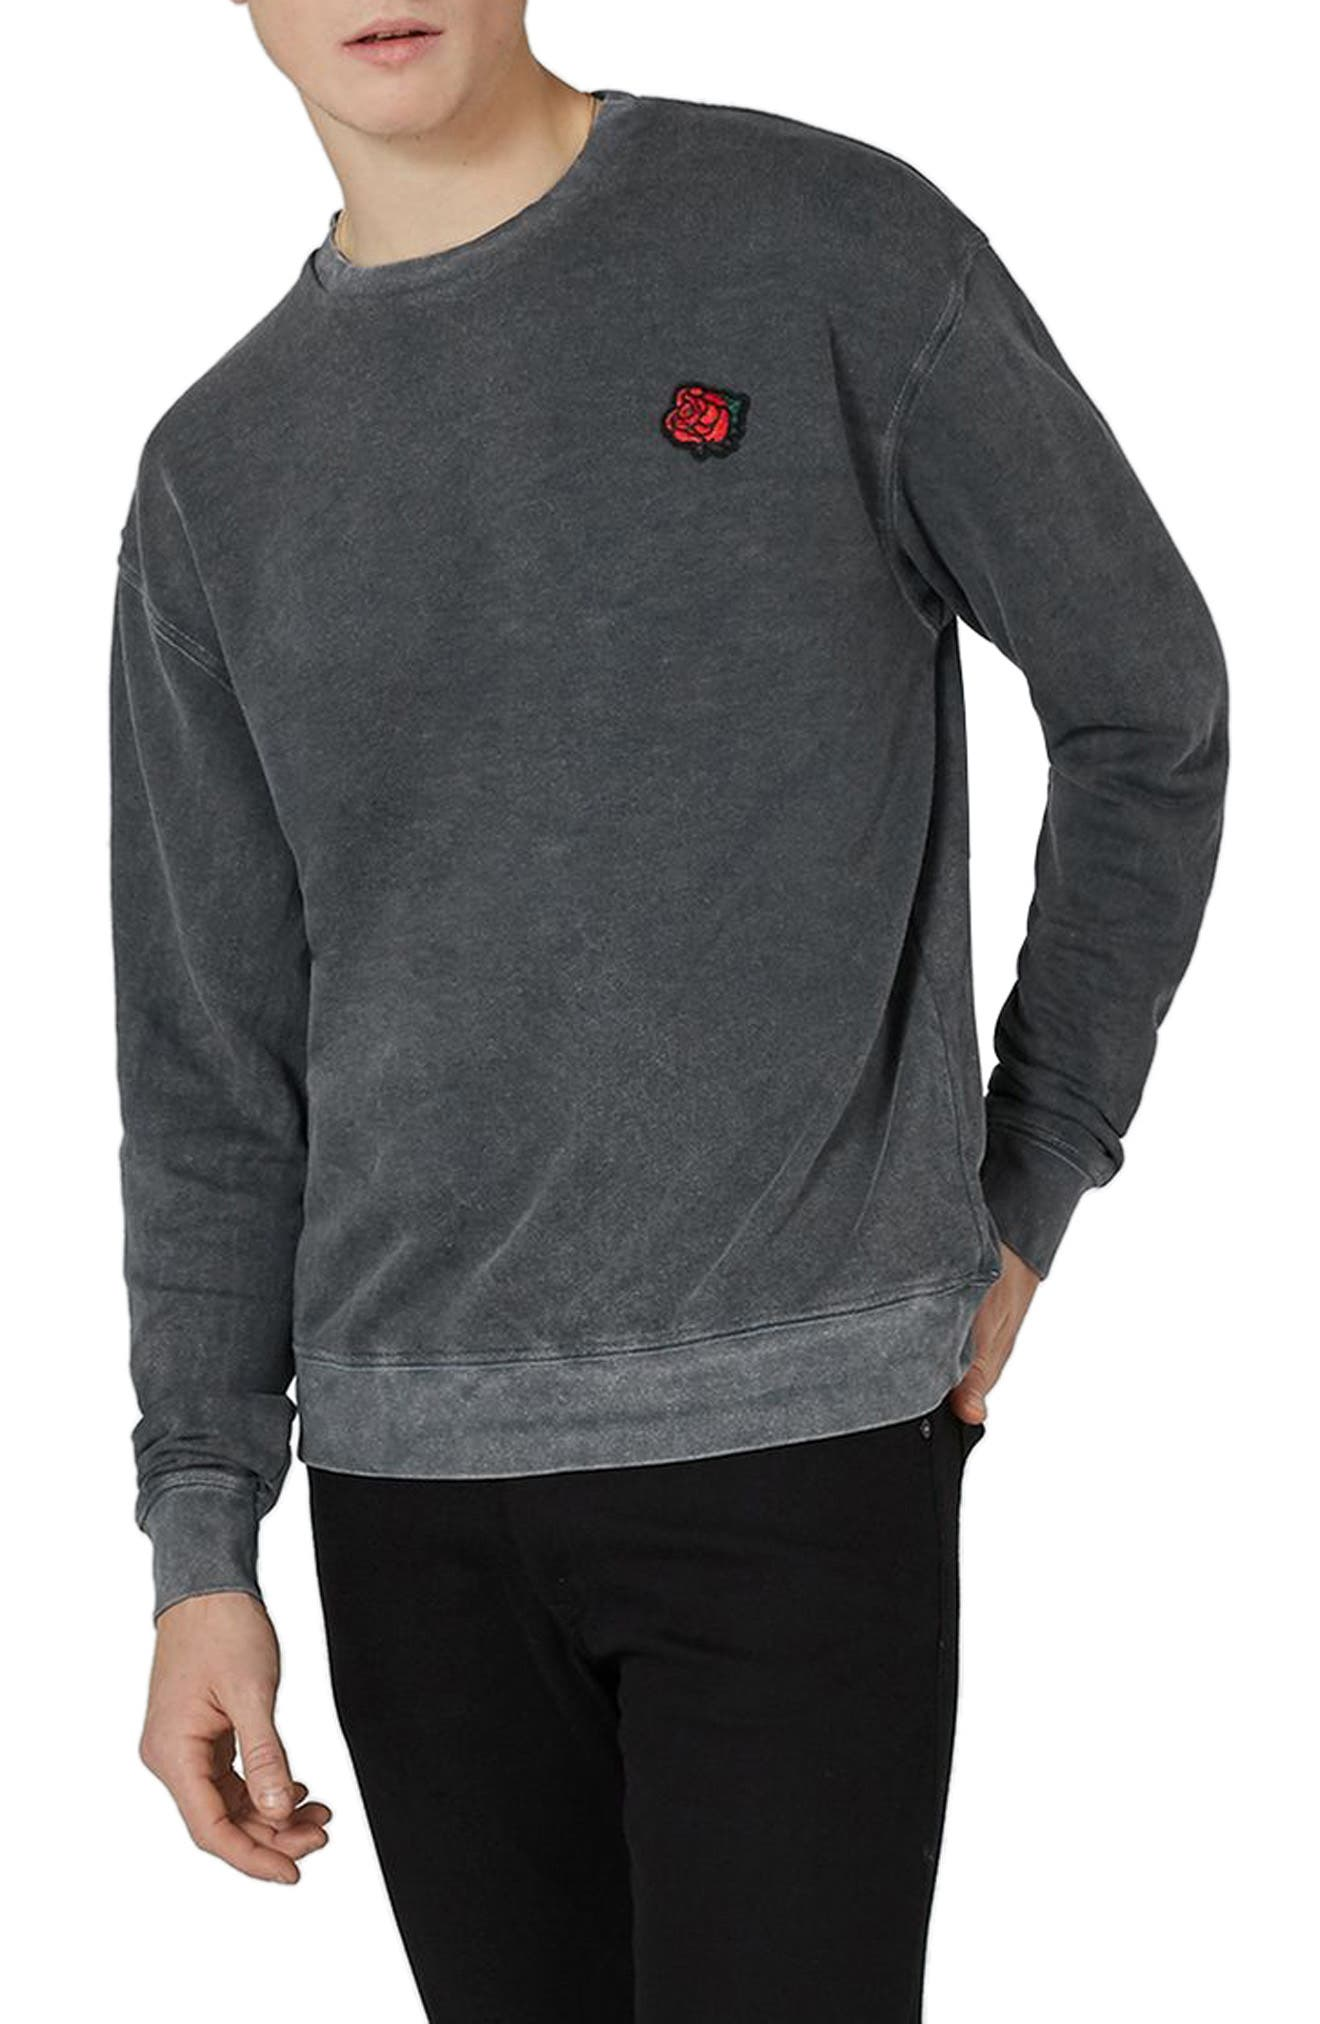 Percy Rose Embroidered Sweatshirt,                         Main,                         color, Grey